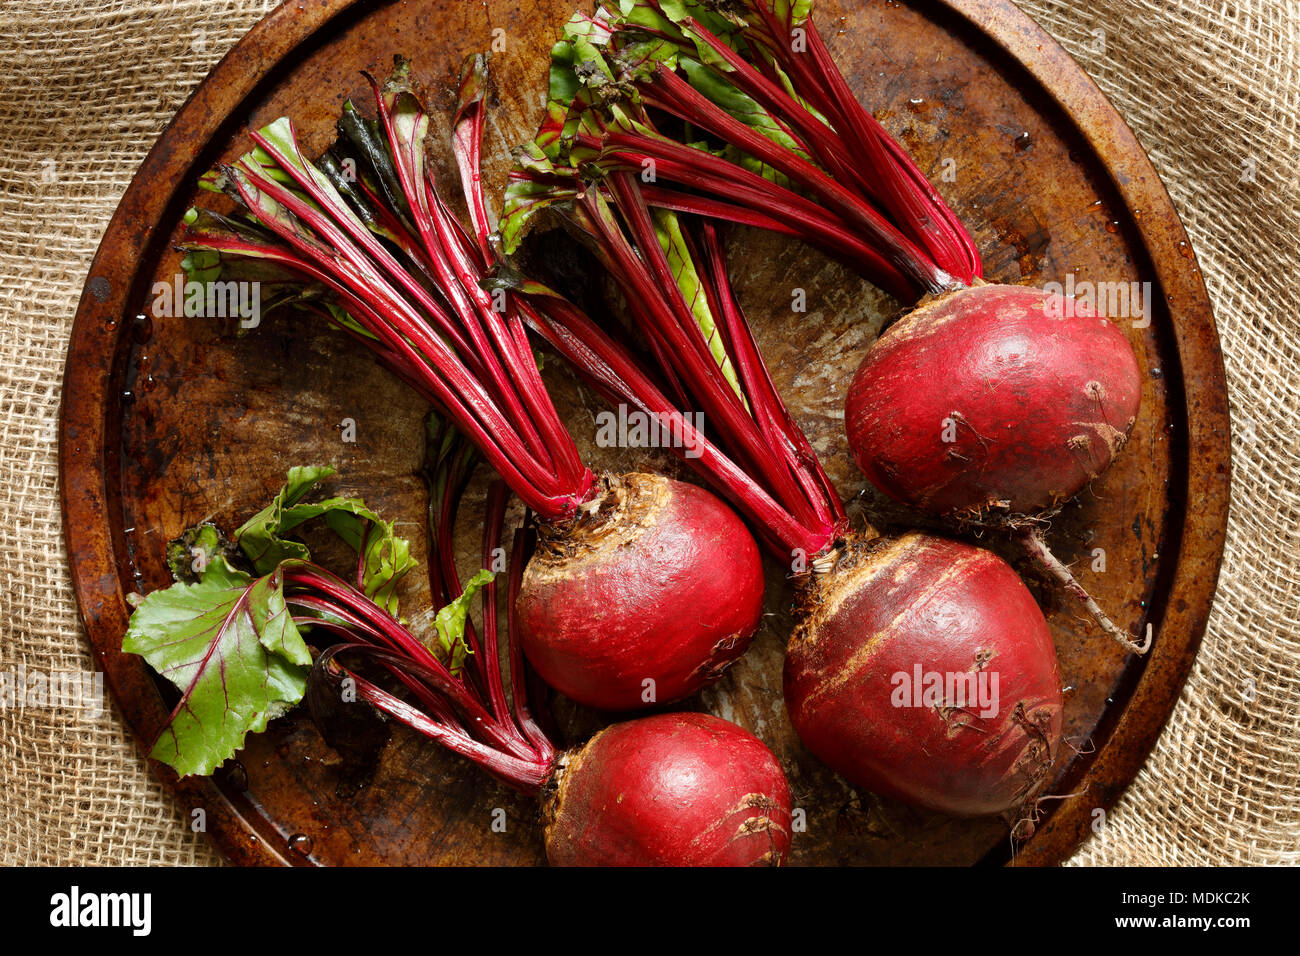 Close-up of fresh beetroots on metal tray on hessian sack cloth Stock Photo